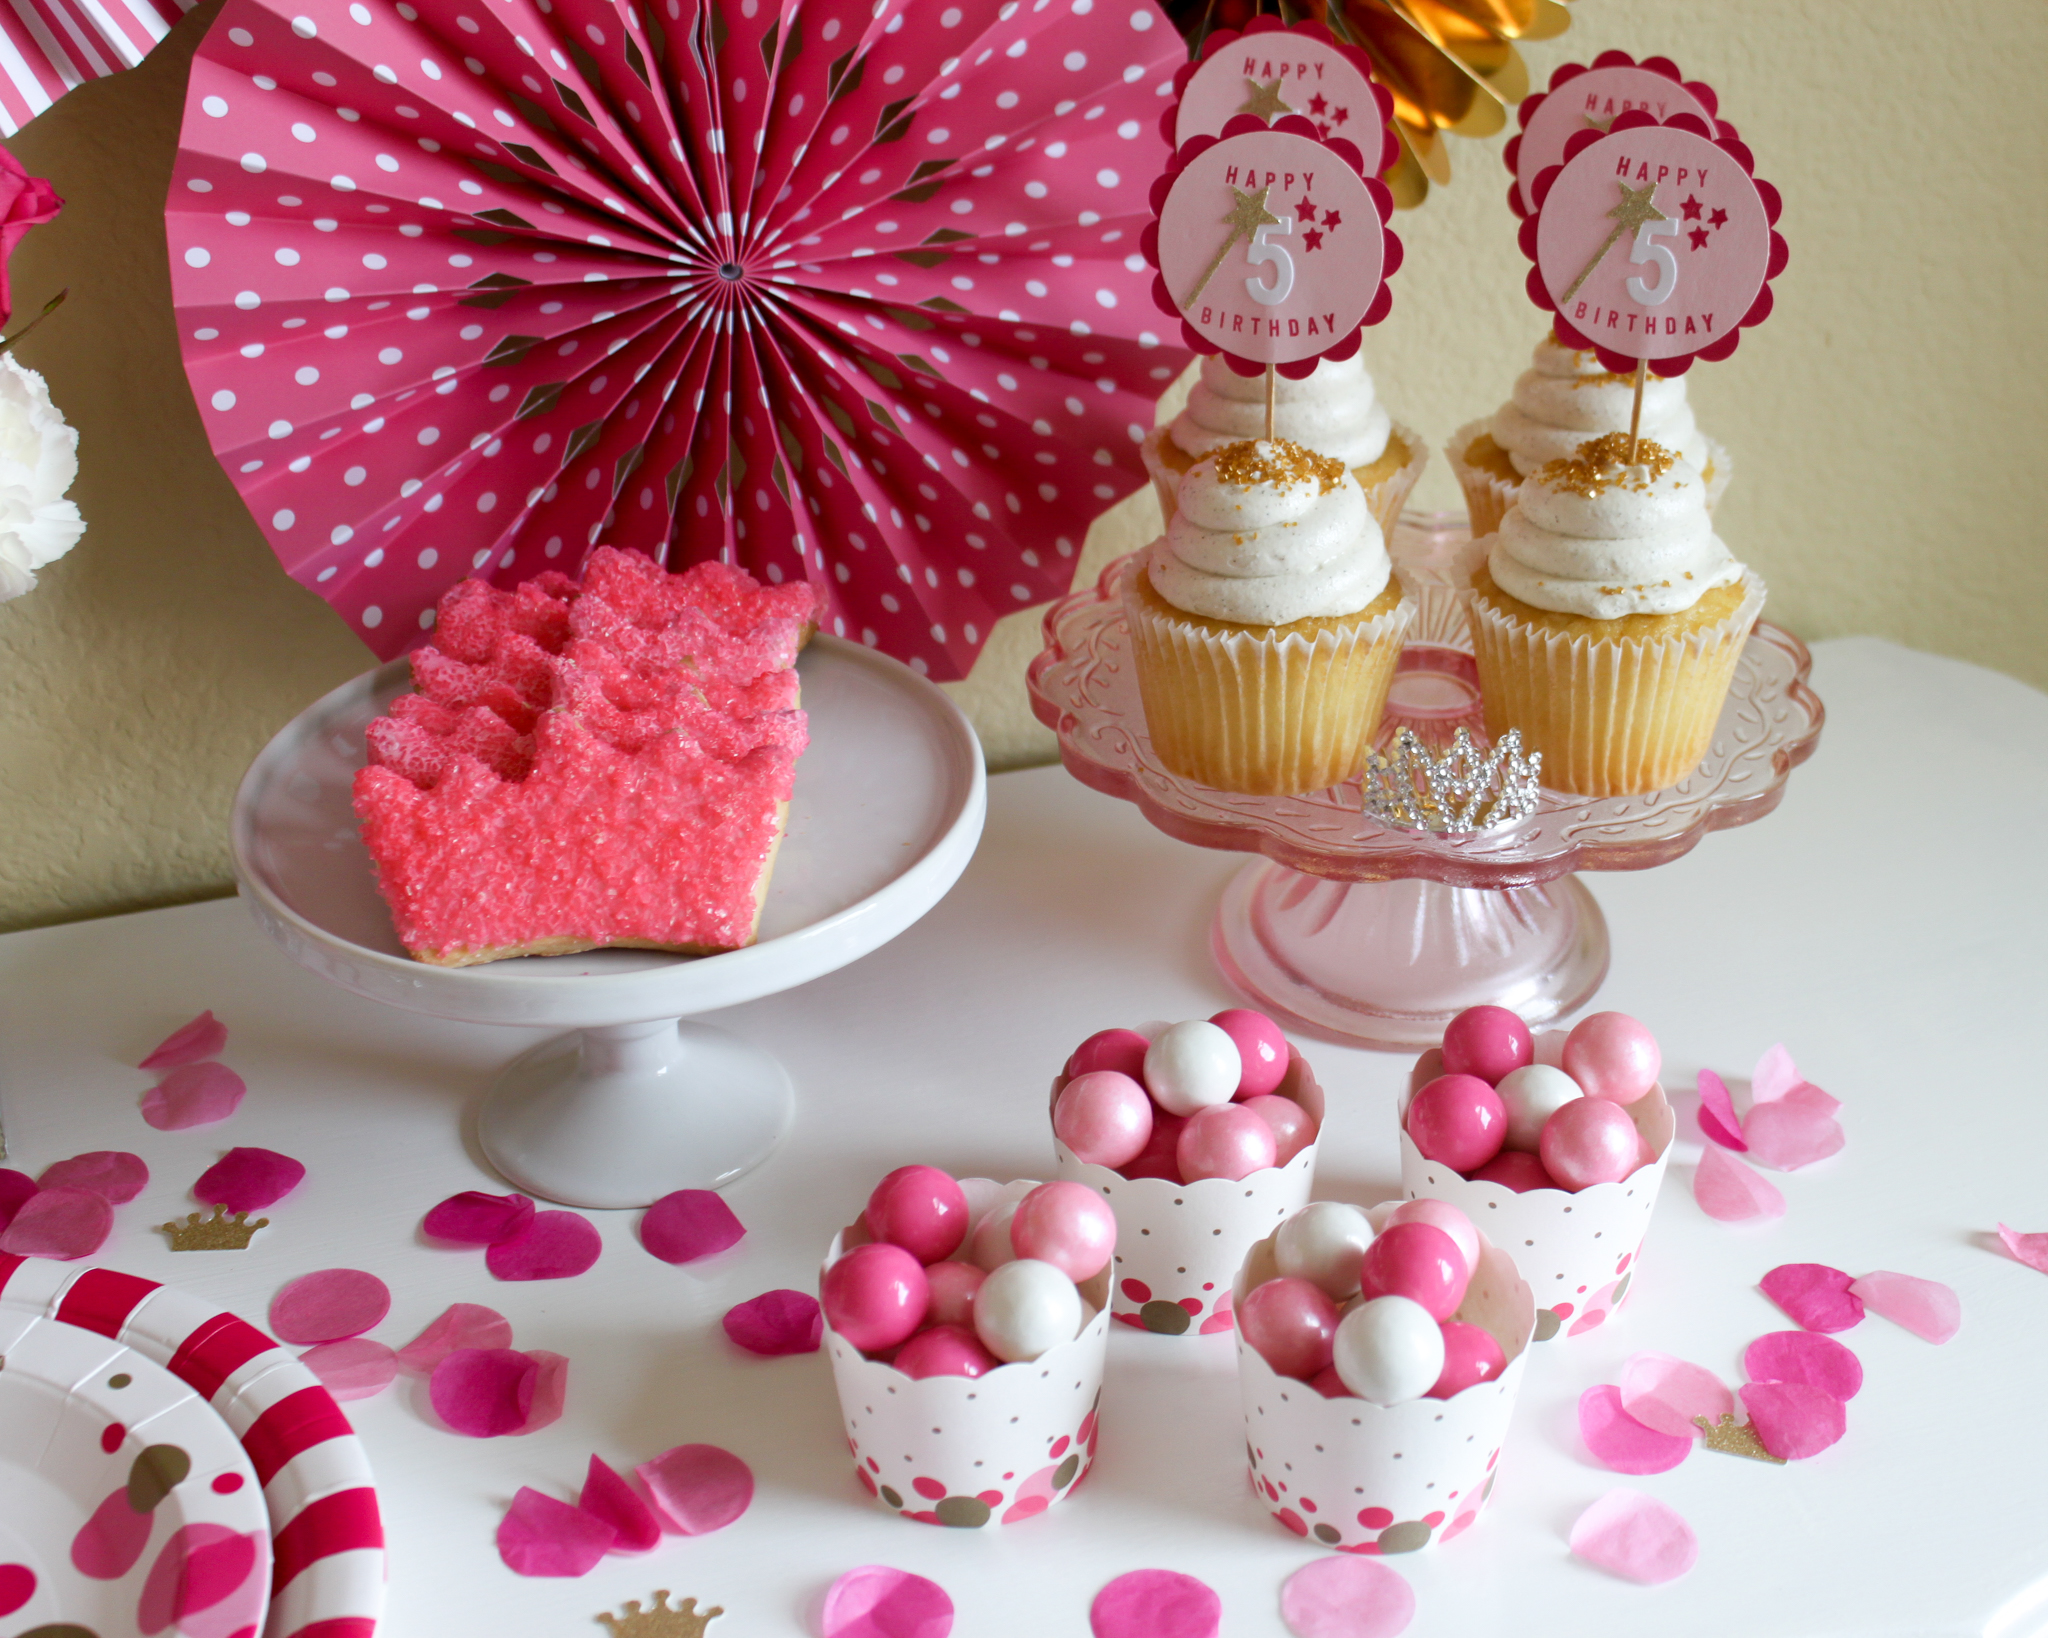 www.ohsofancyparty.com - Pretty Pink Princess Party in a Pinch